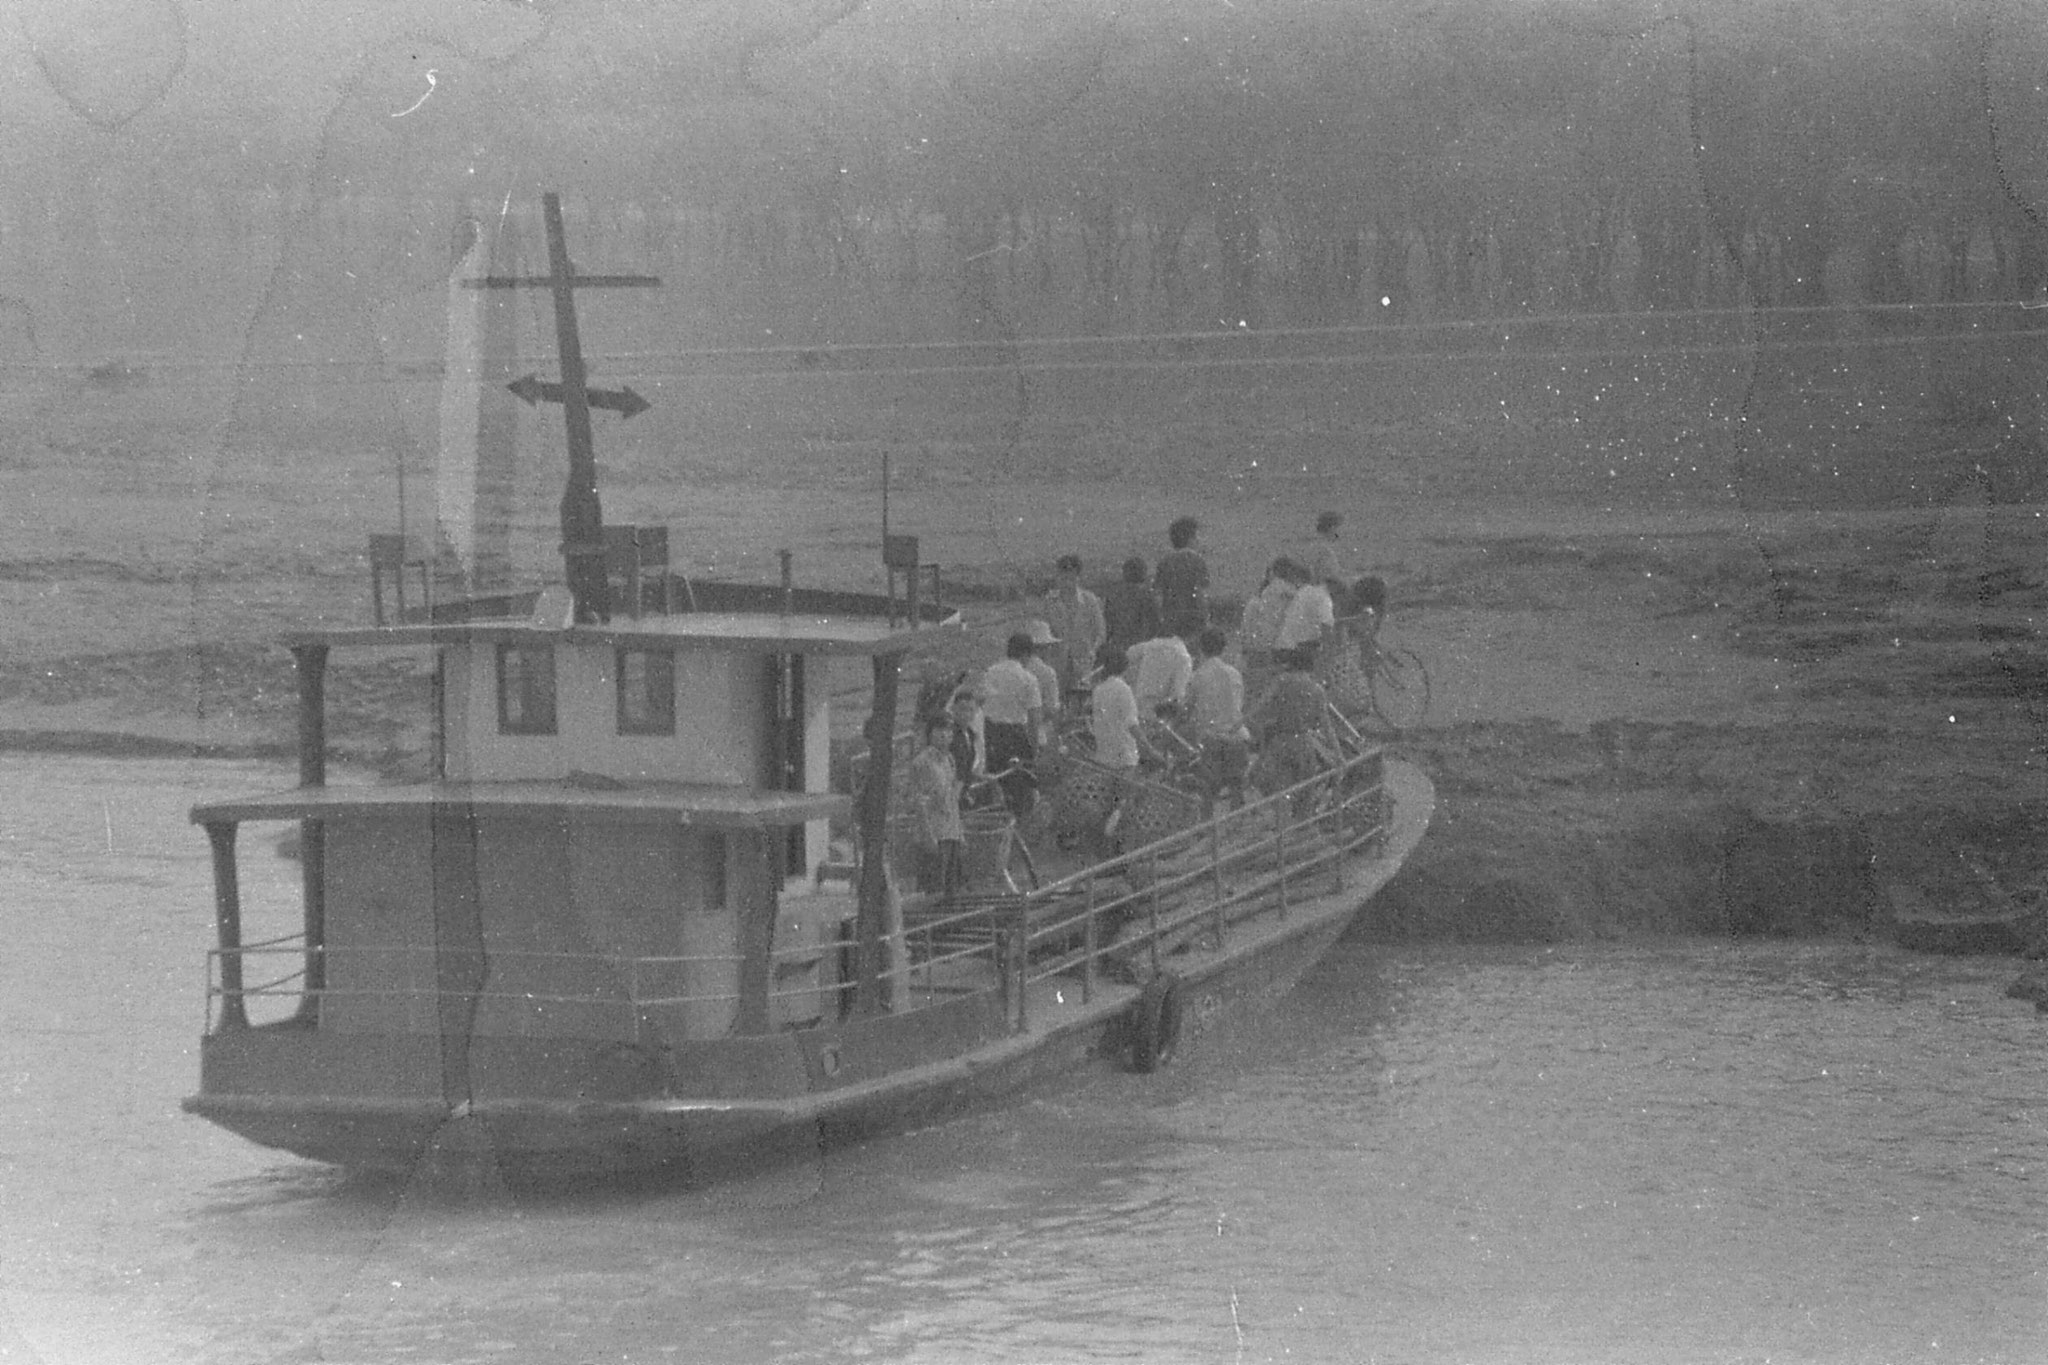 9/8/1989: 24: local ferry